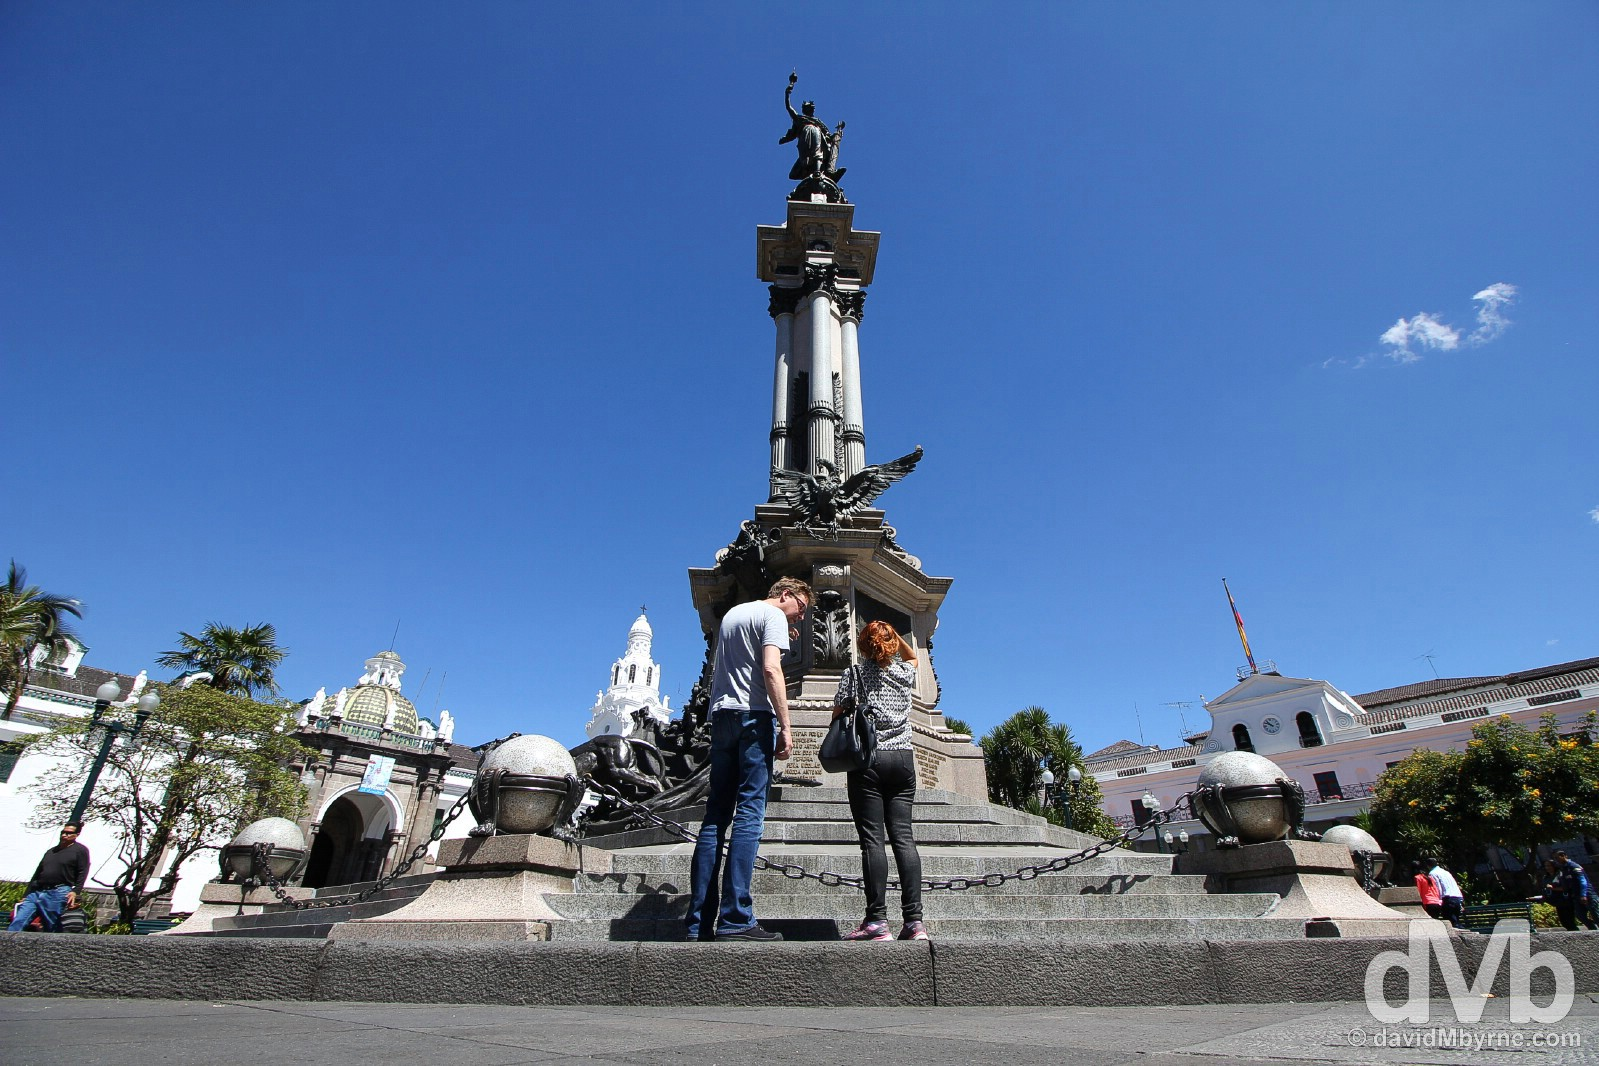 Plaza de la Independencia, one of the three main squares in the UNESCO-listed old town of Quito, Ecuador. July 4, 2015.